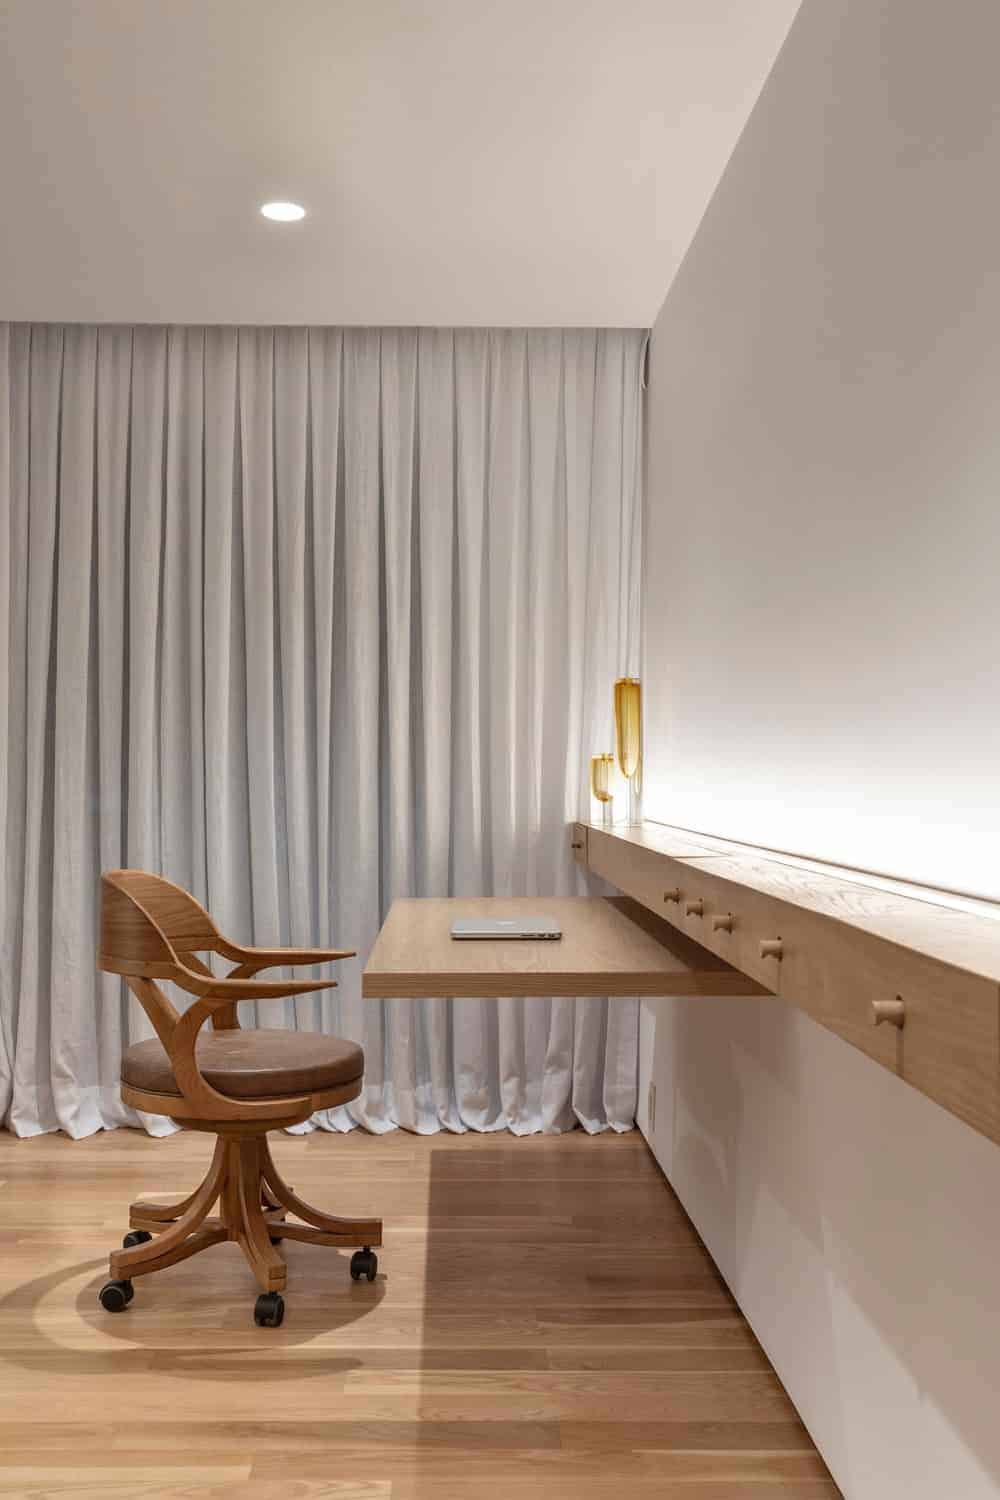 A cozy home office with a round back swivel chair and a built-in desk that matches the hardwood flooring. White drapes along with ambient lighting create warmth in the room.